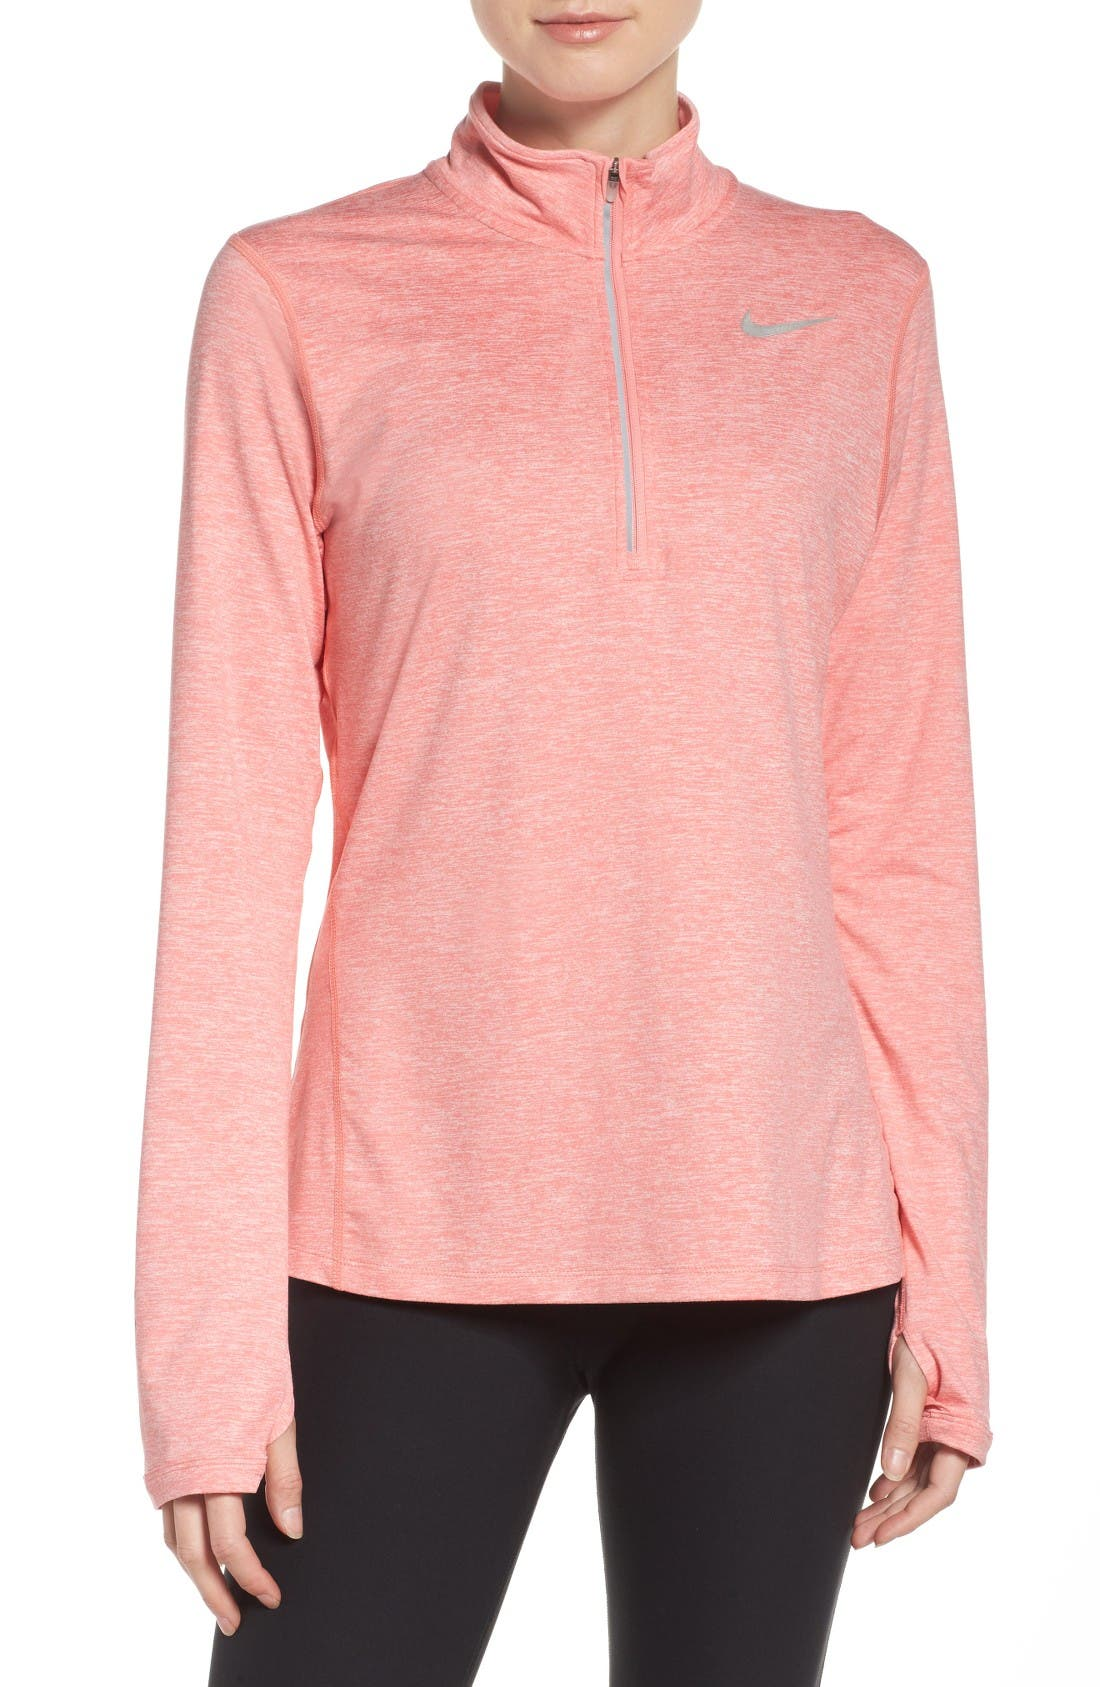 'Element' Dri-FIT Half Zip Performance Top,                             Main thumbnail 1, color,                             Bright Melon/ Heather/ Melon